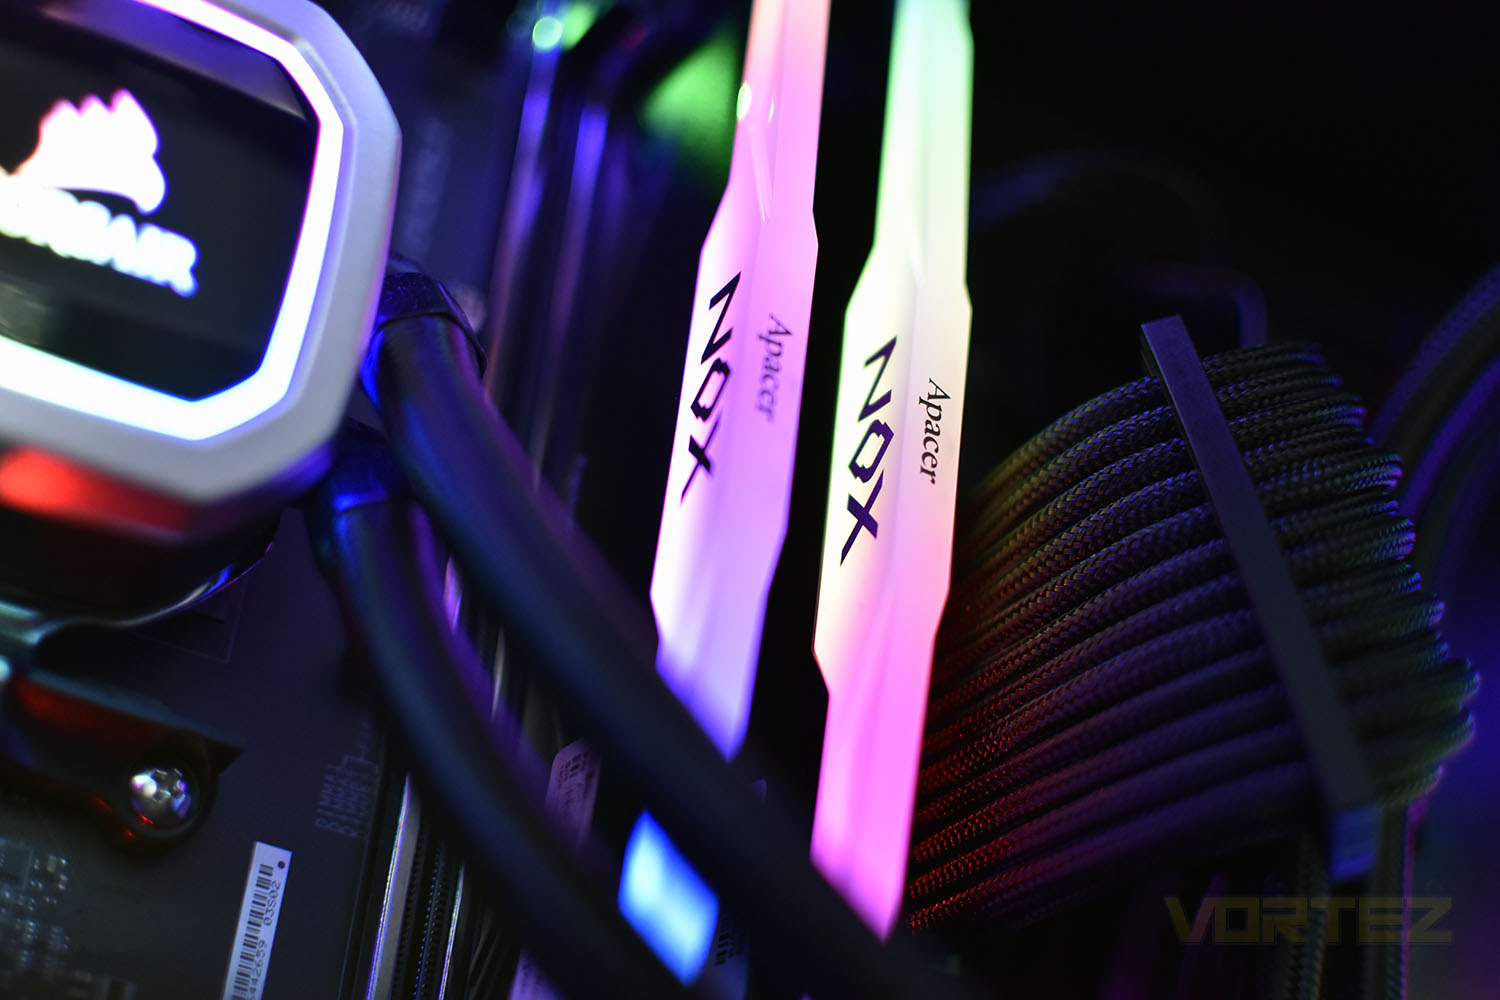 Apacer NOX RGB DDR4 Review - Introduction